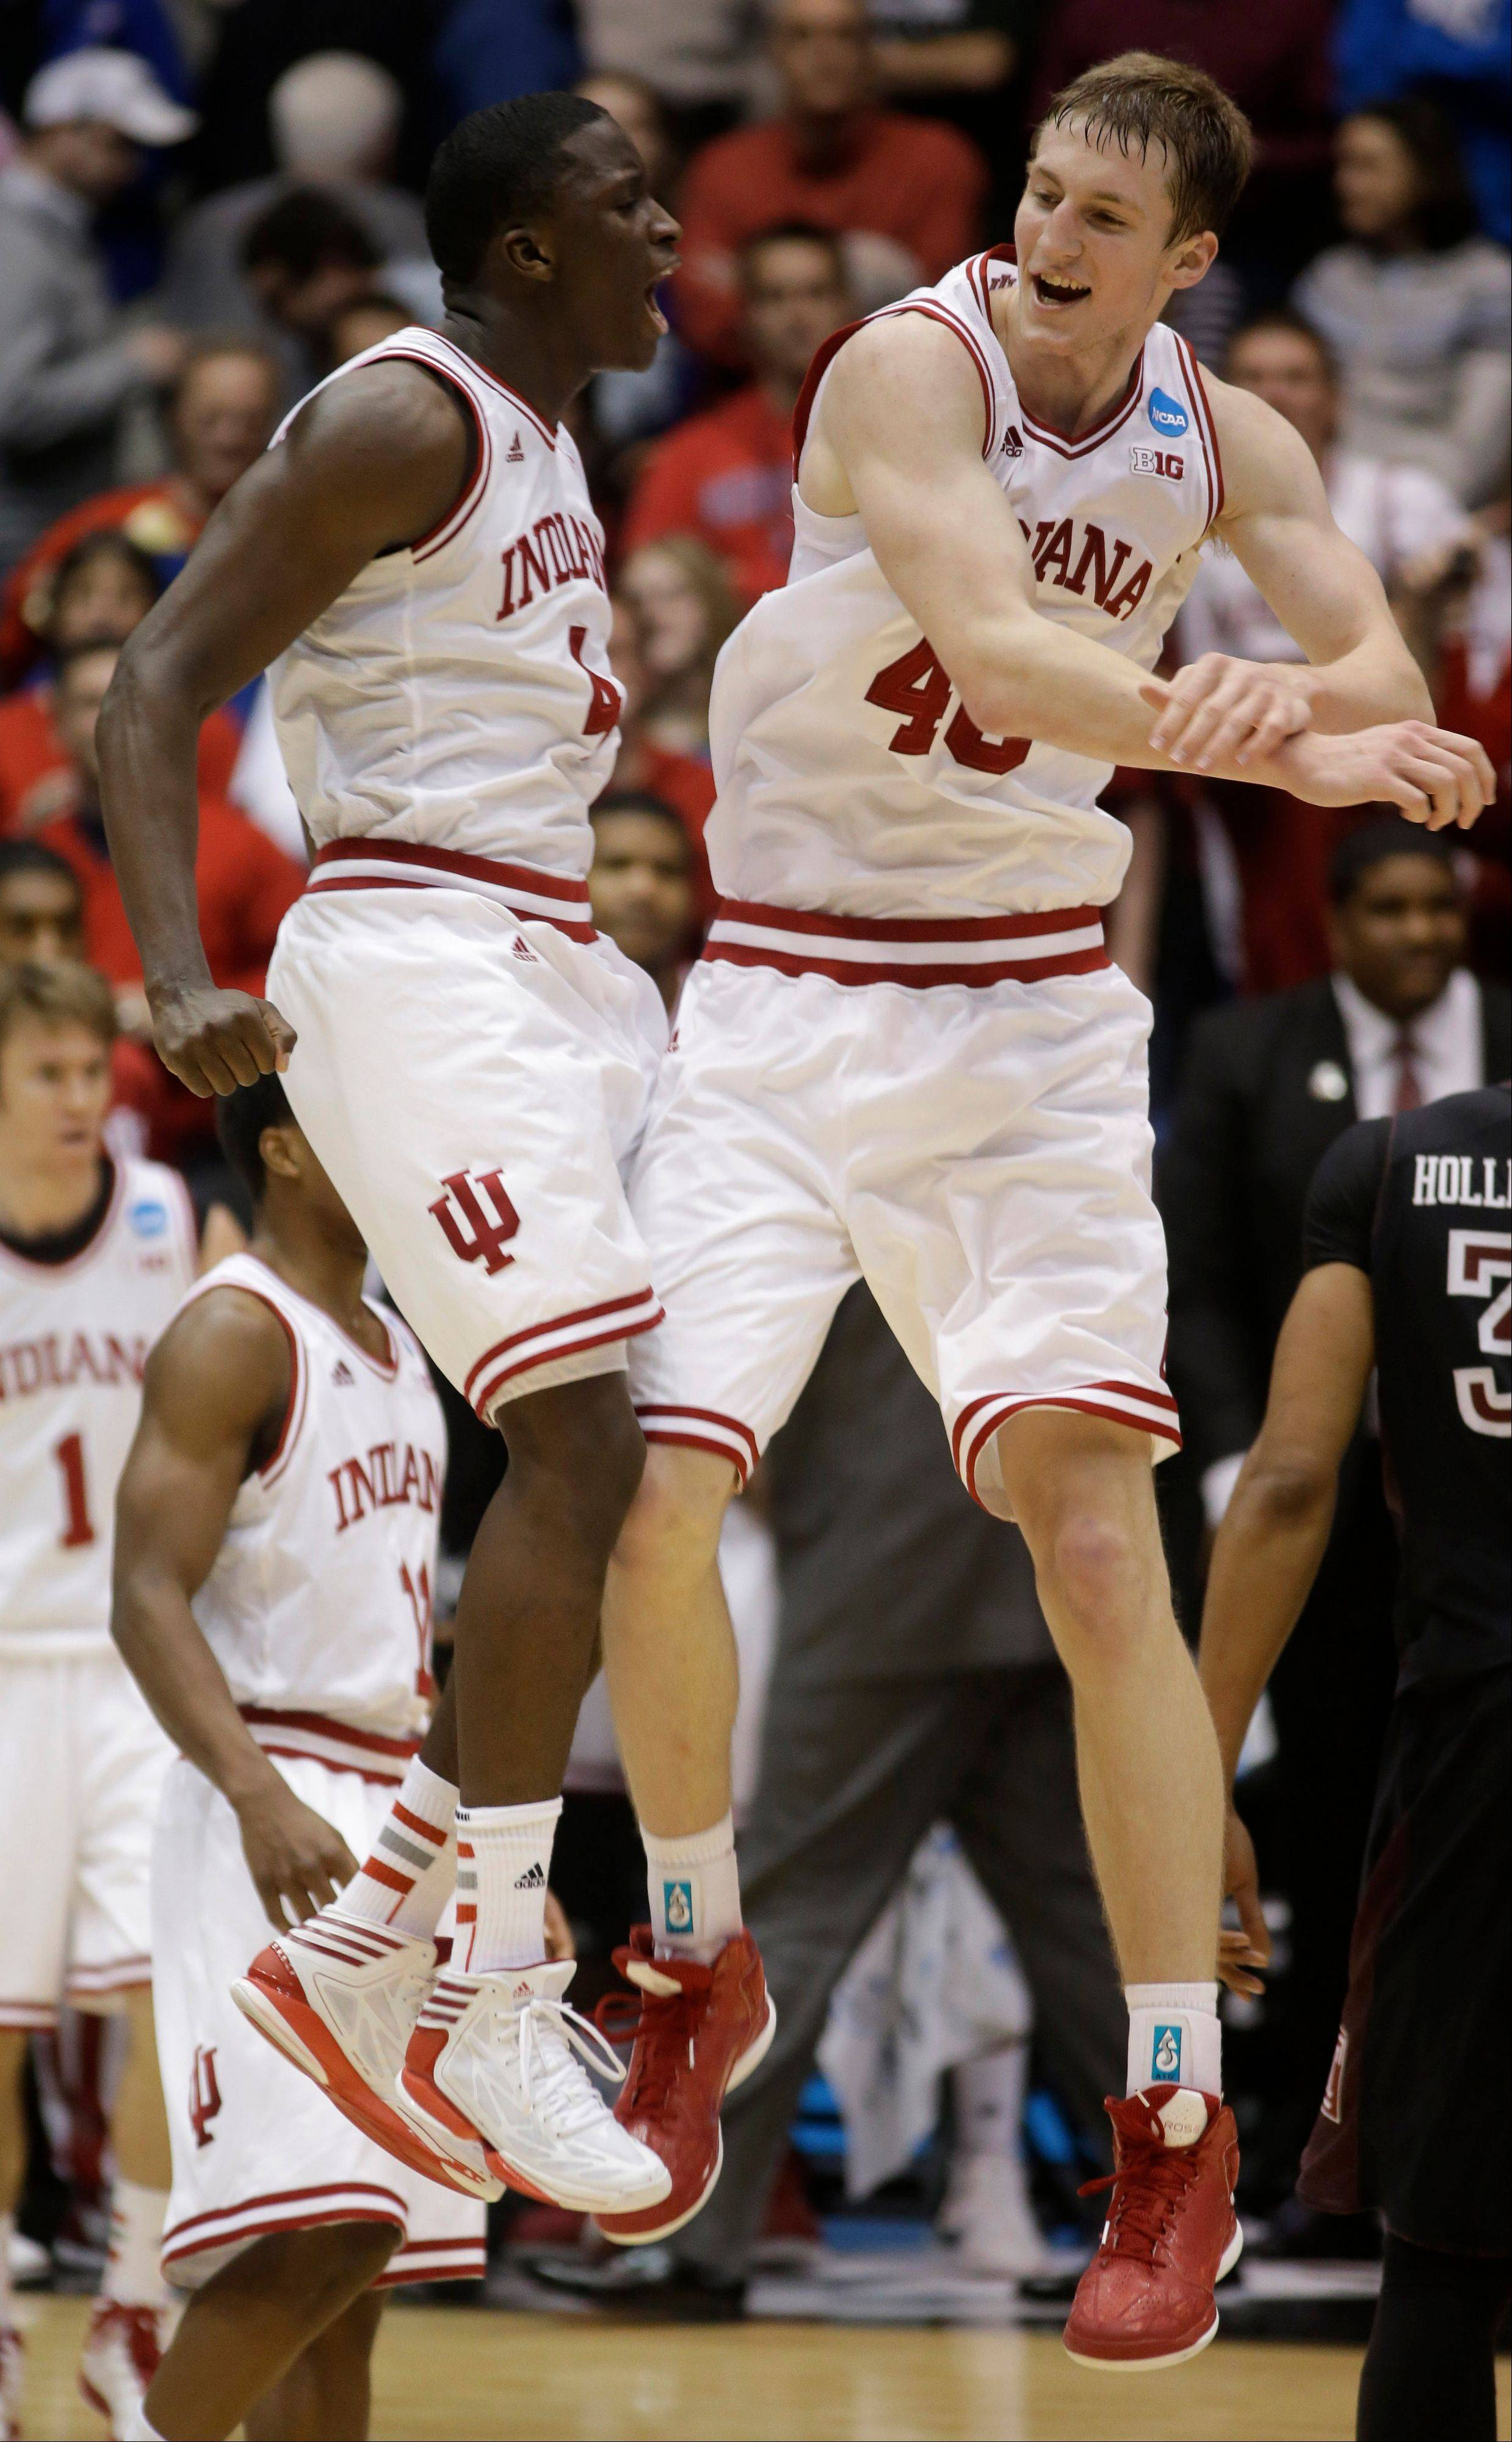 Indiana guard Victor Oladipo (4) and forward Cody Zeller celebrate after they defeated Temple 58-52 in a third-round game of the NCAA college basketball tournament Sunday March 24, 2013, in Dayton, Ohio.